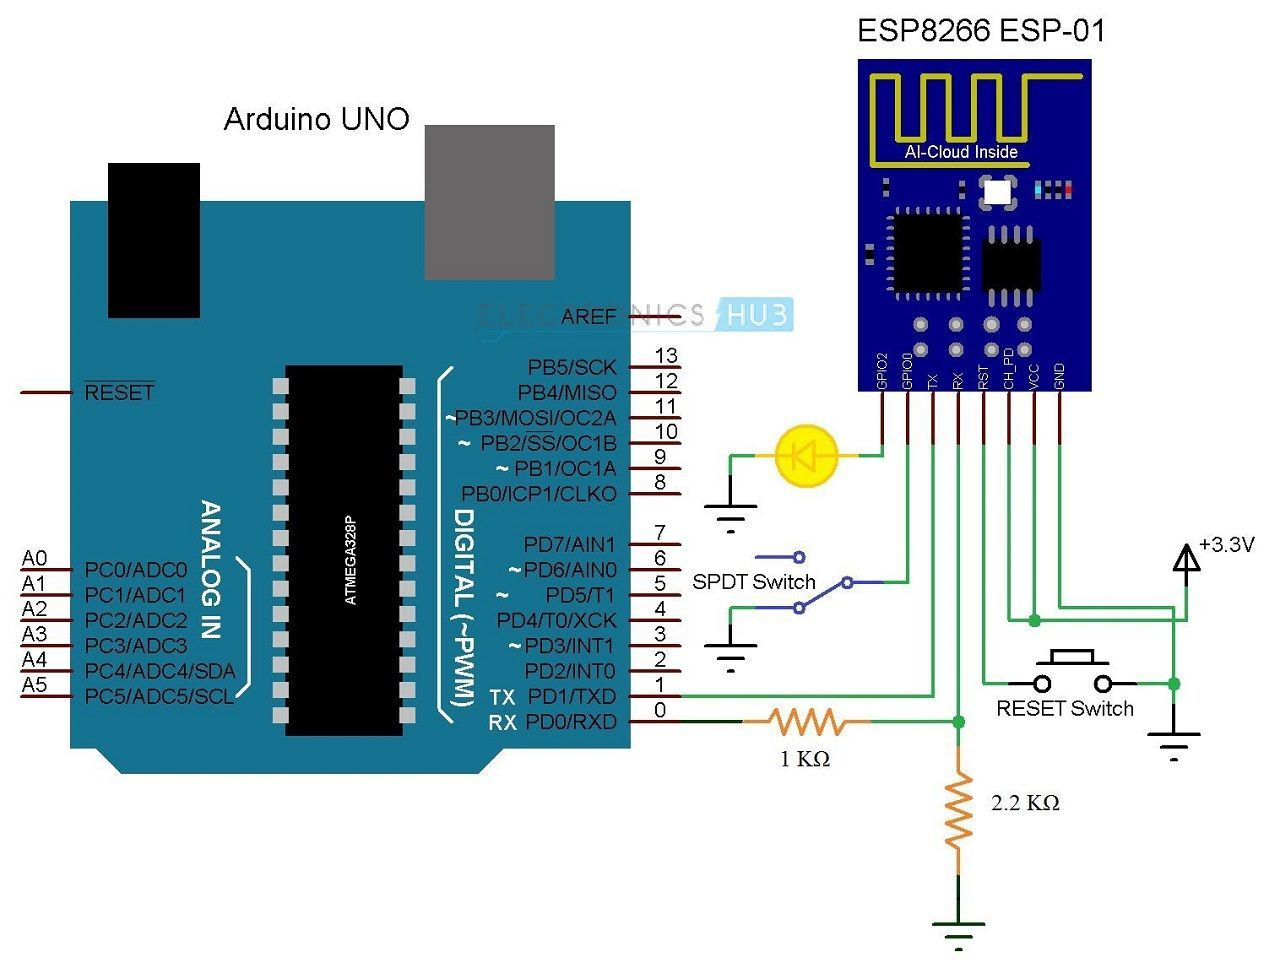 Getting Started With Esp8266 And Arduino Interface Circuit Diagram Wireless Printer Image 3 1 Iot Projects Cnc Router